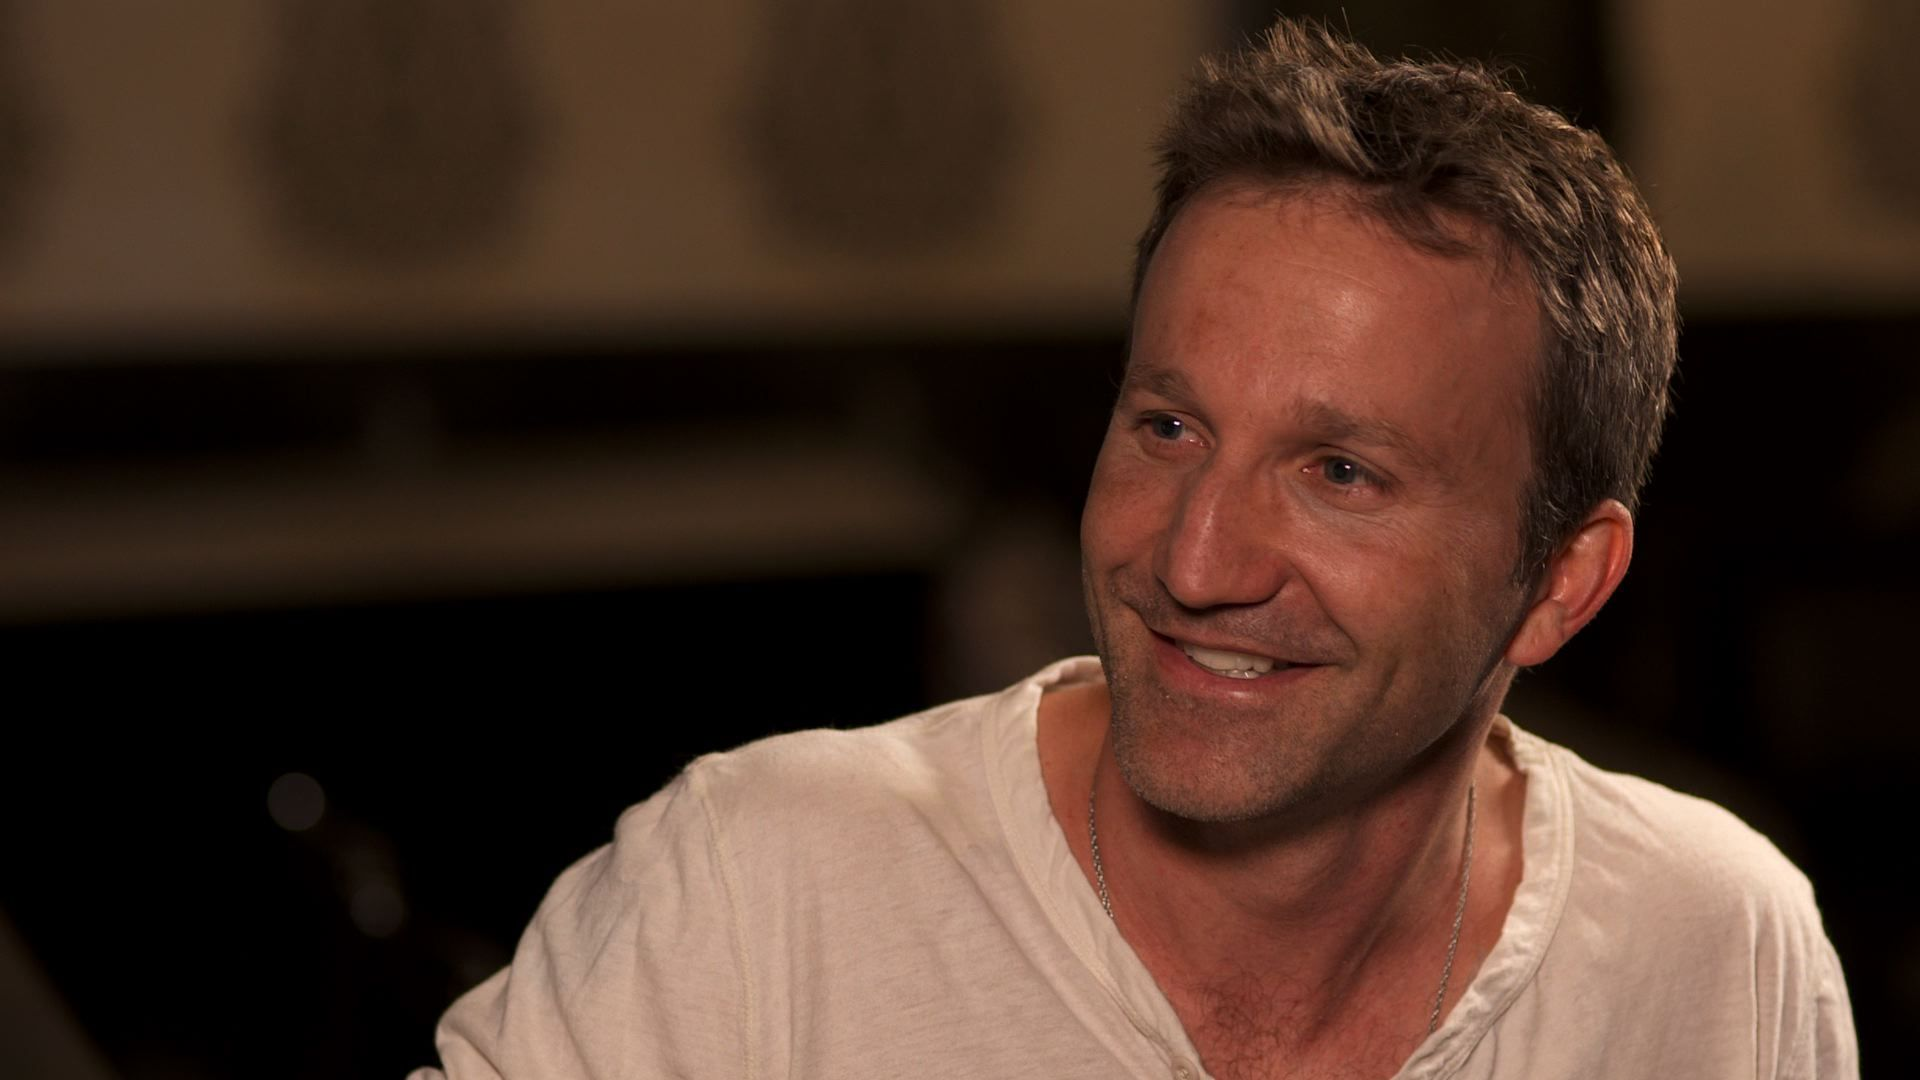 breckin meyer girlfriendbreckin meyer 2016, breckin meyer twitter, breckin meyer imdb, breckin meyer dr house, breckin meyer 2015, breckin meyer 2017, breckin meyer instagram, breckin meyer interview, breckin meyer height, breckin meyer clueless, ryan phillippe and breckin meyer, breckin meyer facebook, breckin meyer net worth, breckin meyer movies, breckin meyer shirtless, breckin meyer wife, breckin meyer girlfriend, breckin meyer wonder years, breckin meyer king of the hill, breckin meyer garfield